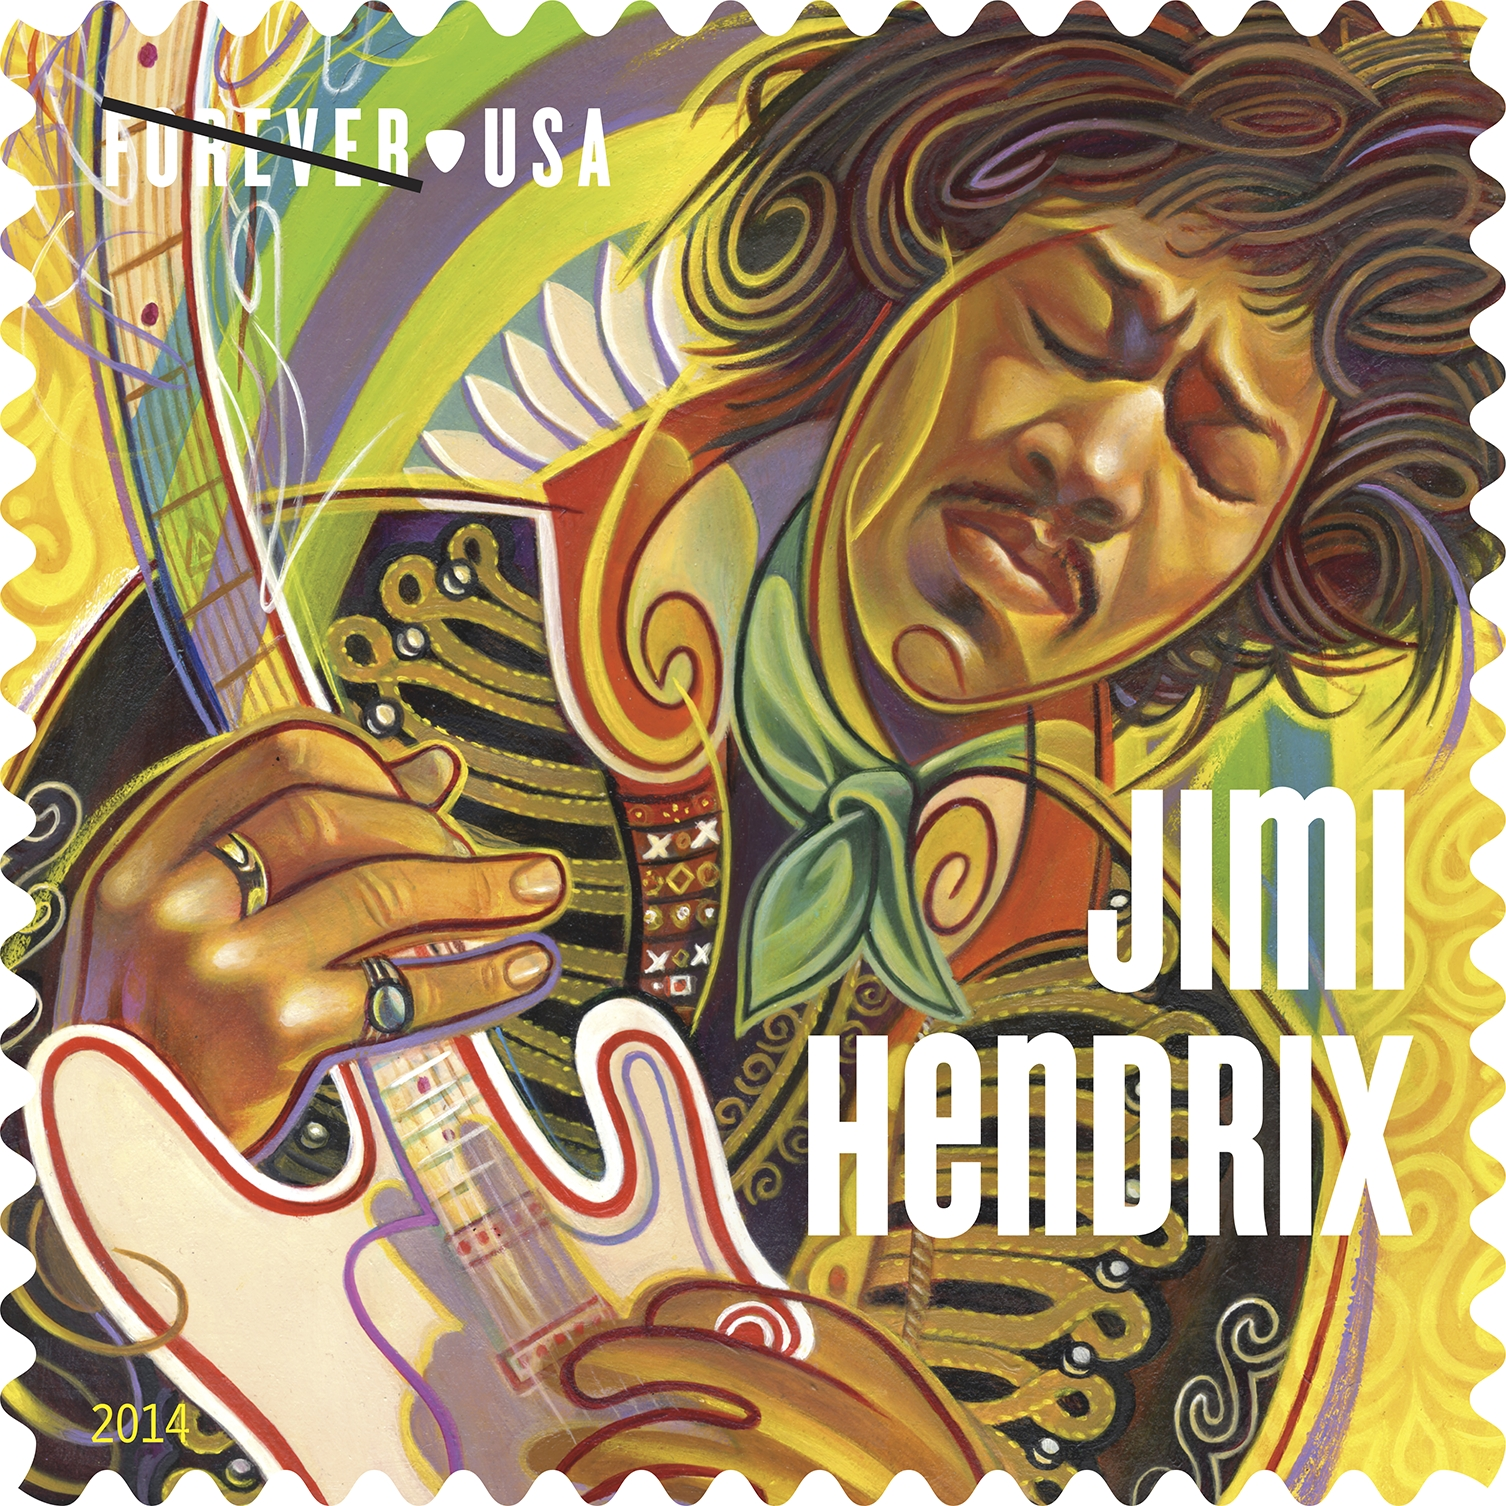 The USPS released a new Forever stamp honoring guitarist Jimi Hendrix.